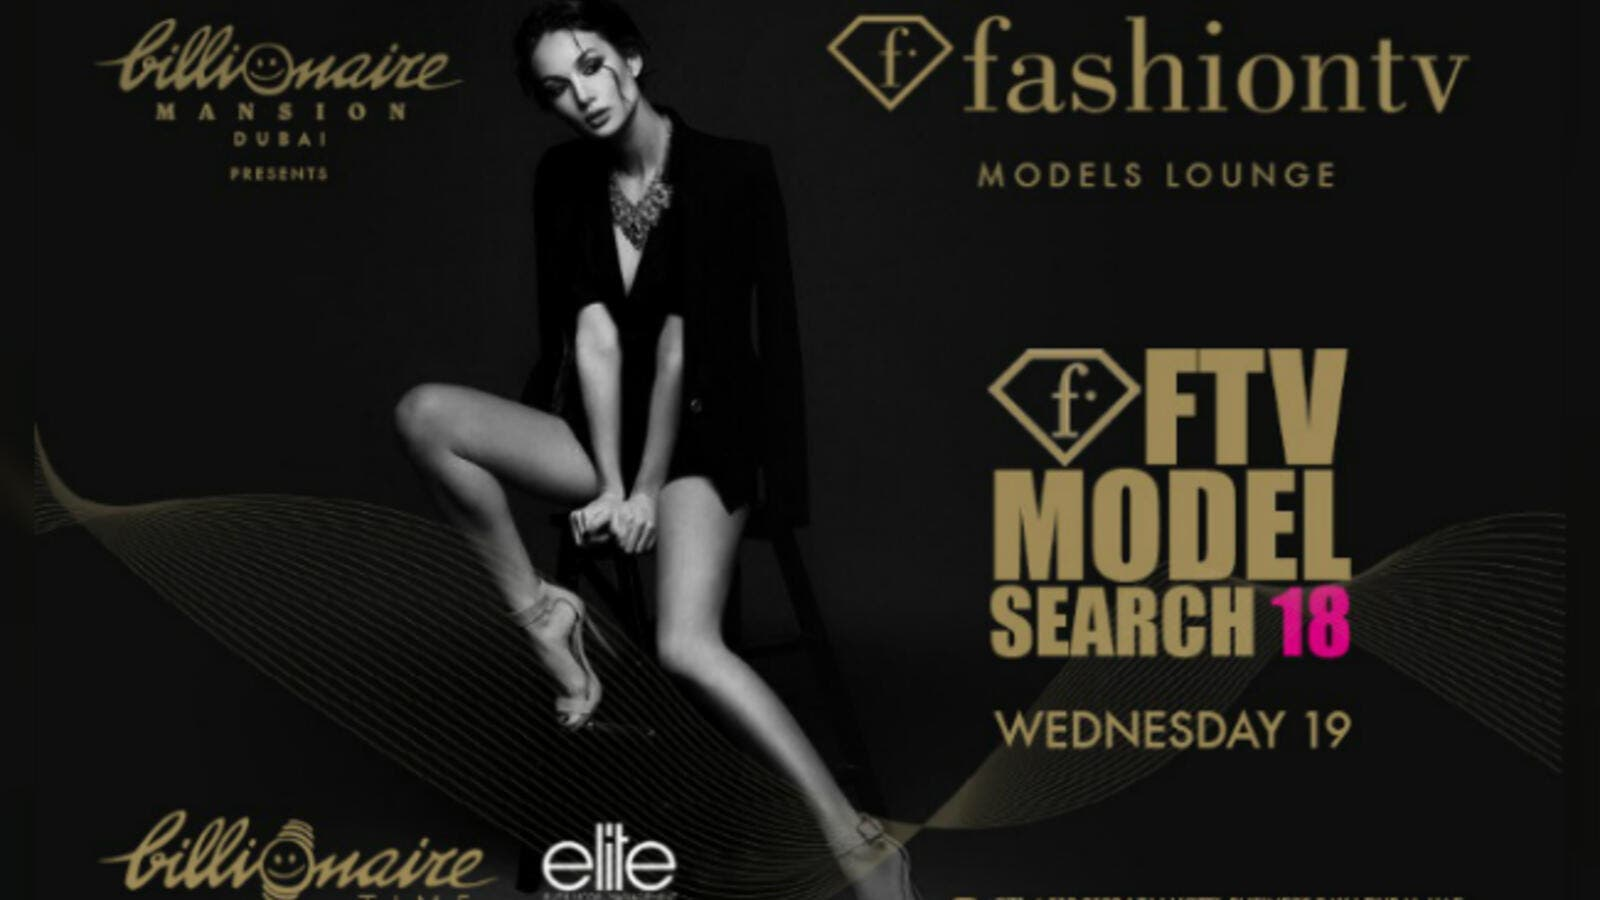 One lucky winner will be crowned as the face of Fashion TV and Billionaire Time watches.